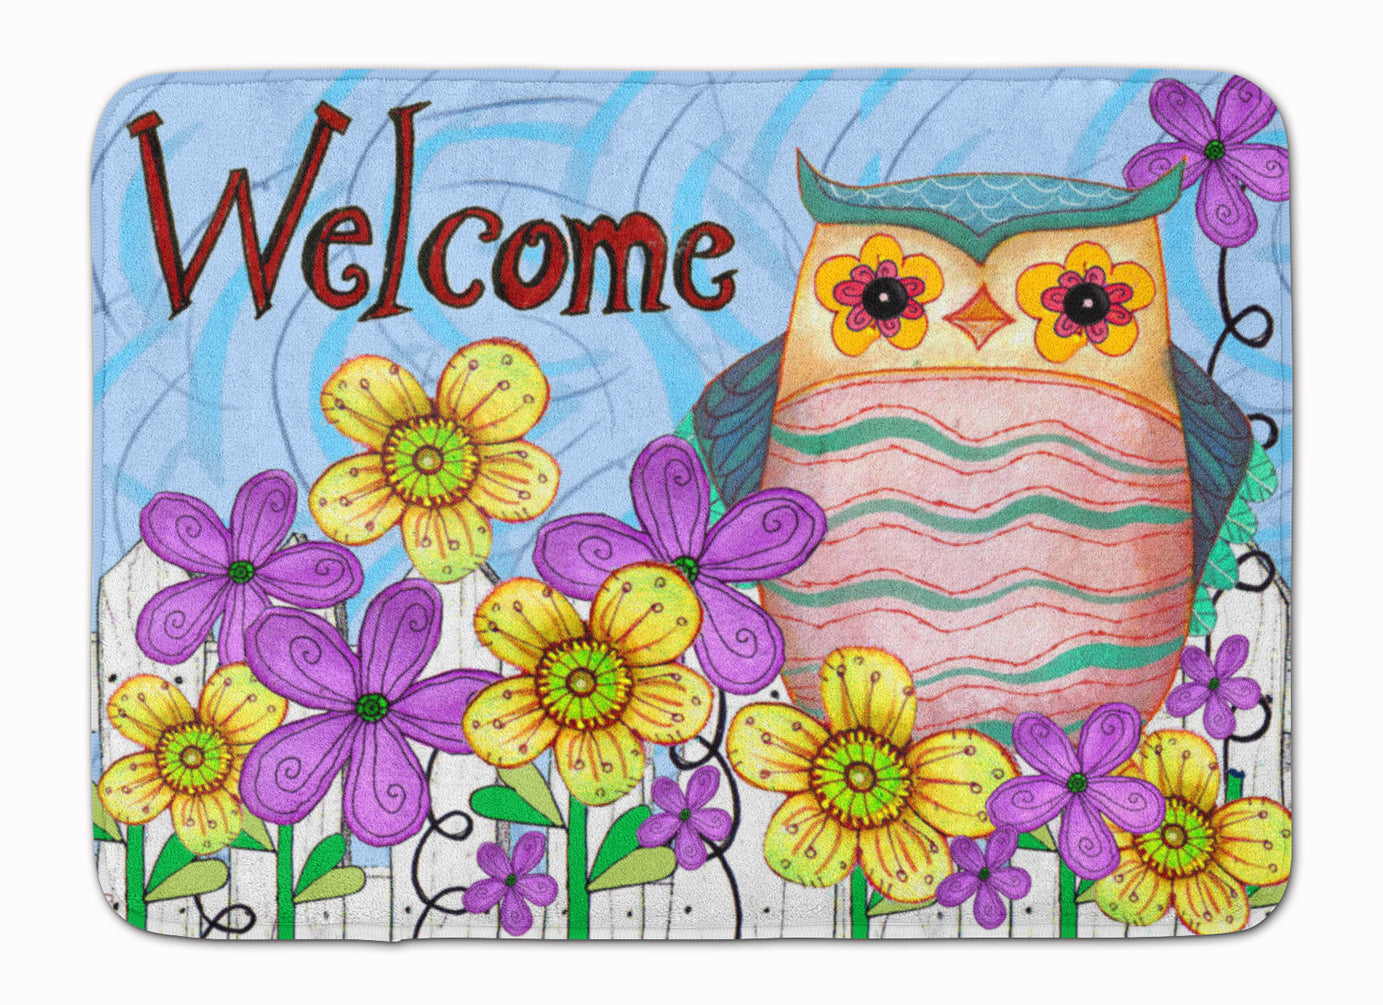 Welcome Owl Machine Washable Memory Foam Mat PJC1095RUG by Caroline's Treasures